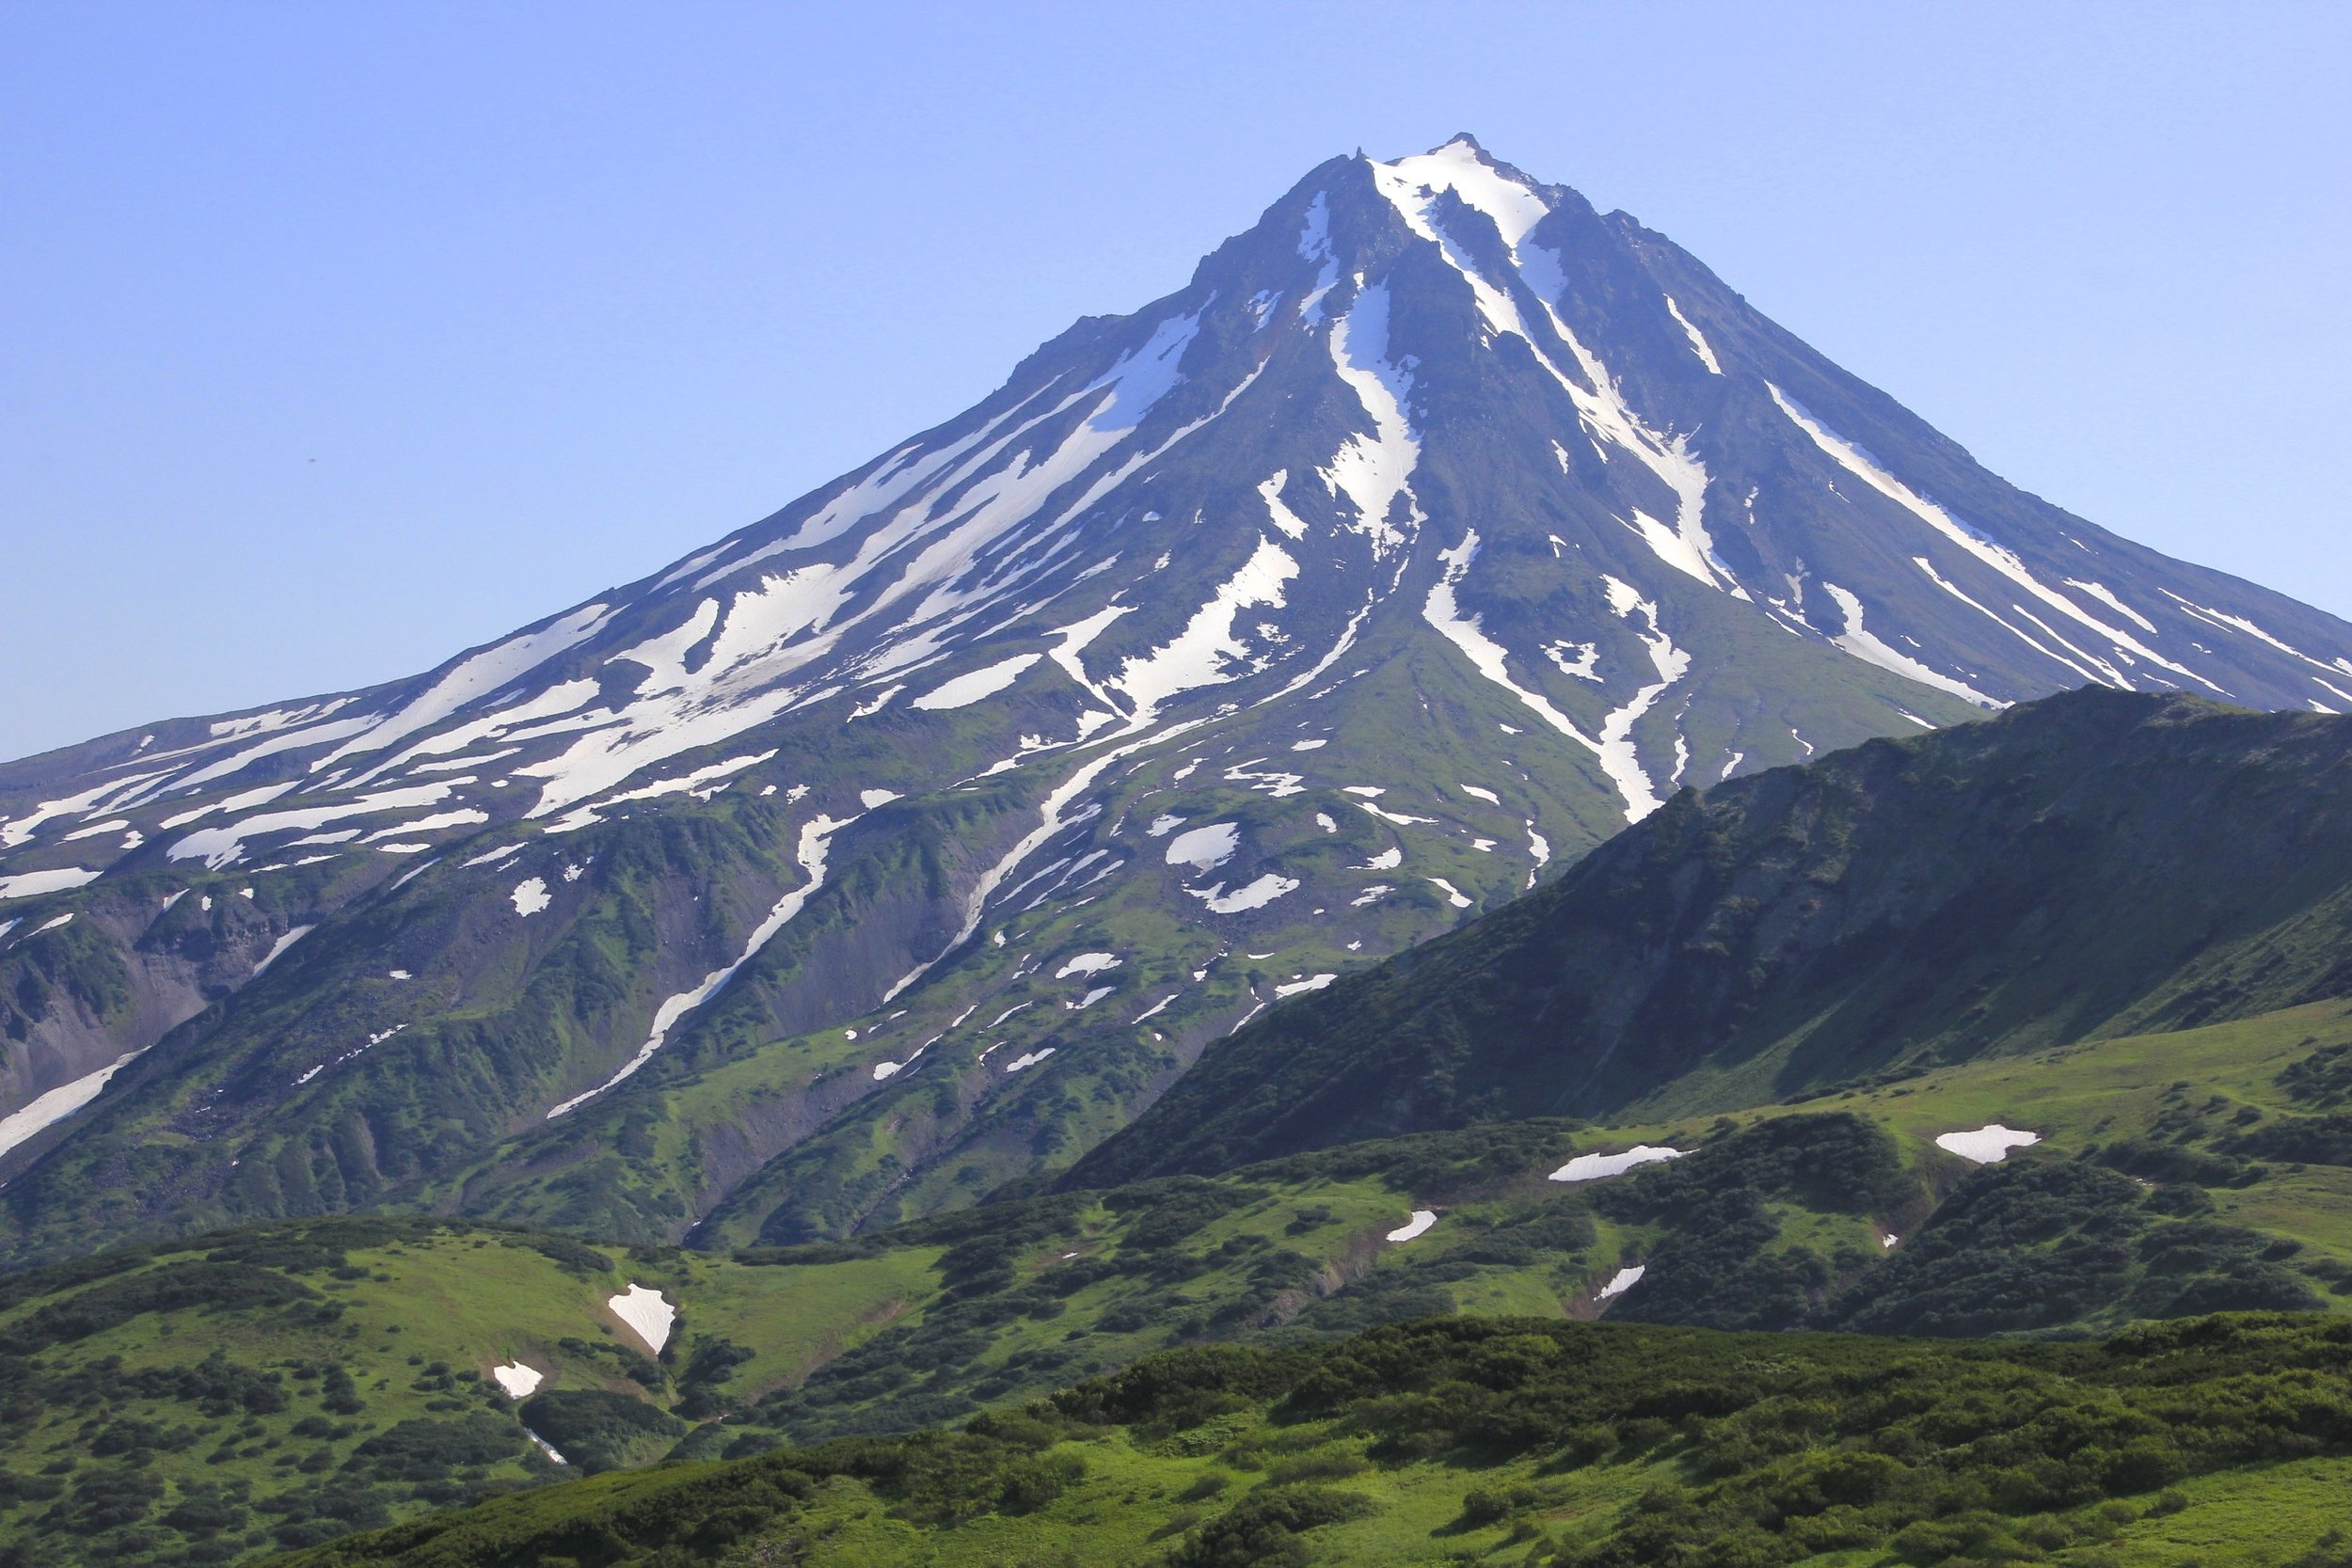 The Vilyuchinsky Volcano 2,173m. It is 1.5 hr away from PK by car on a so-so road. The sign at its base indicated that it required 6 hours for an ascent.